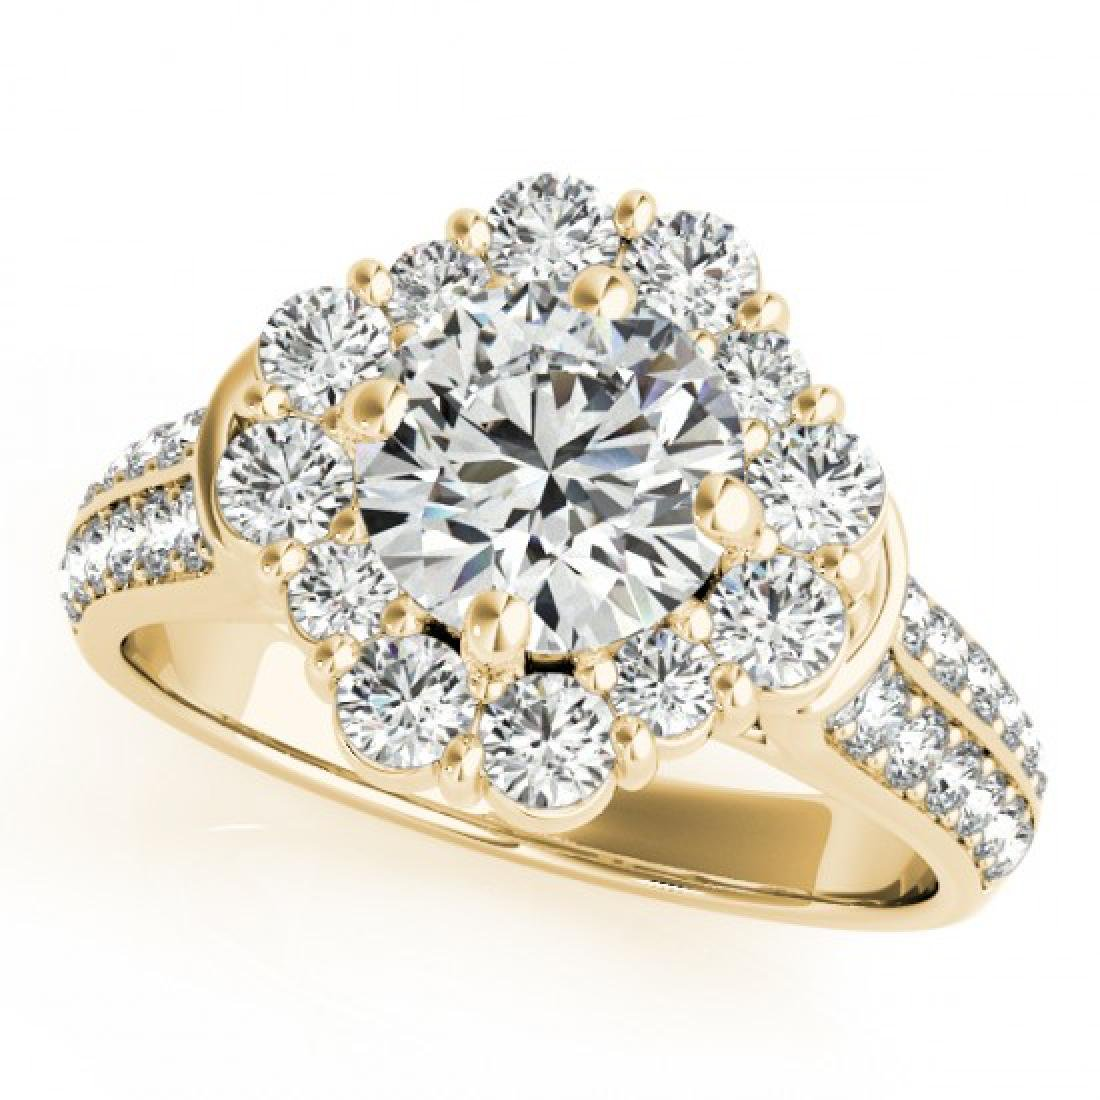 2.81 CTW Certified VS/SI Diamond Solitaire Halo Ring